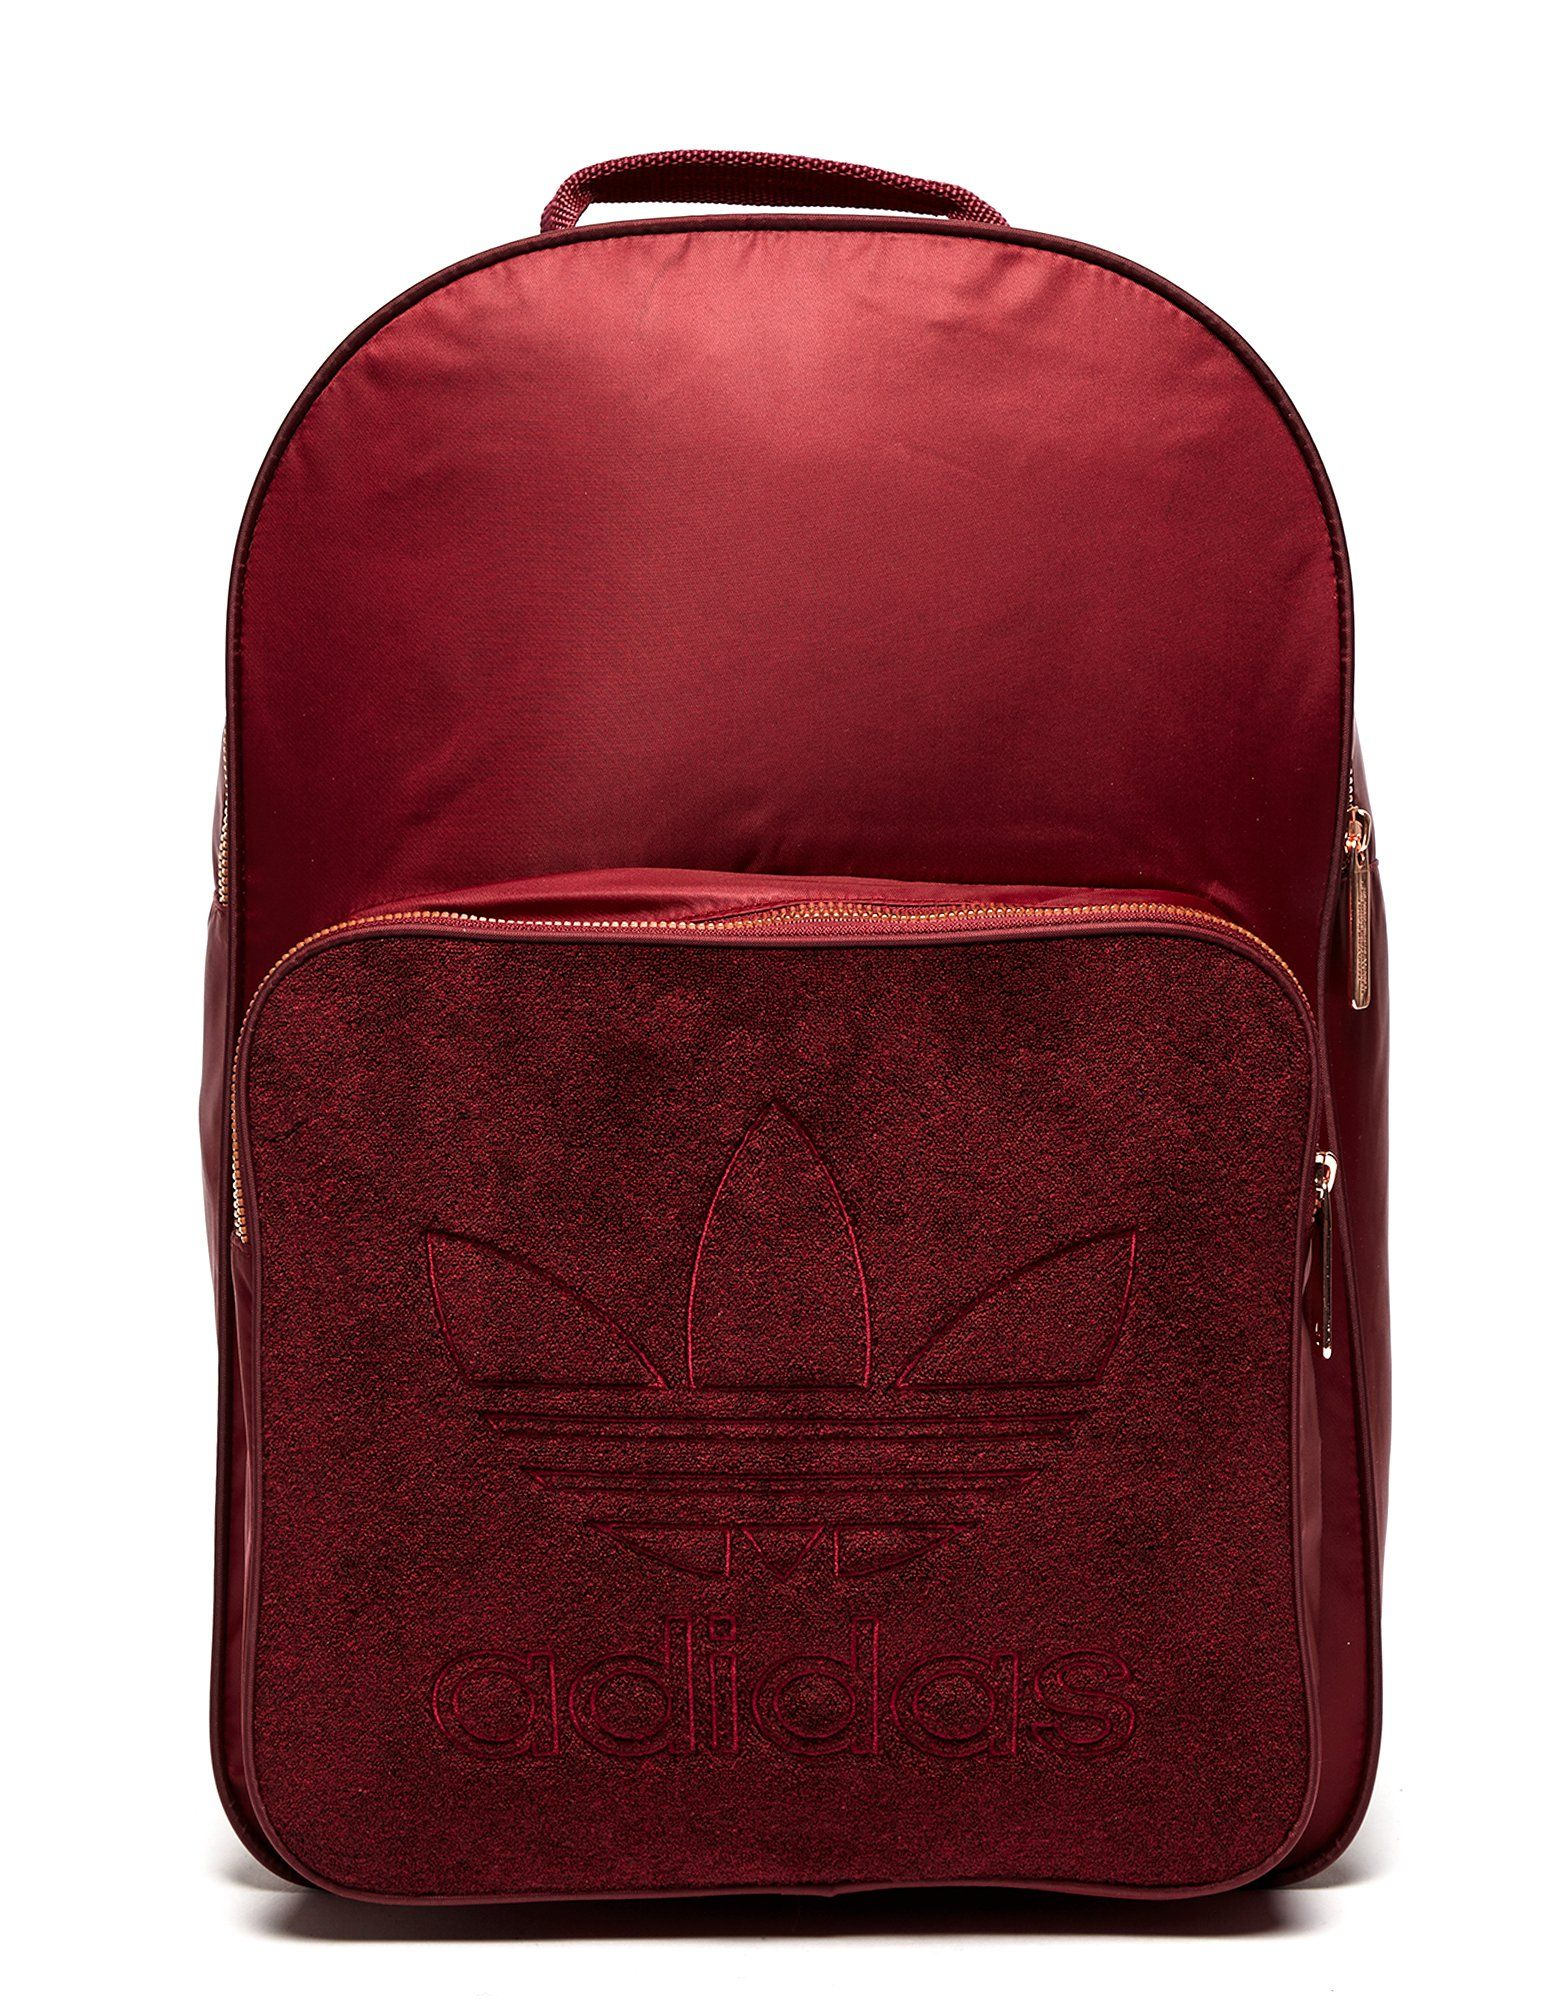 adidas Originals Classic Velour Backpack